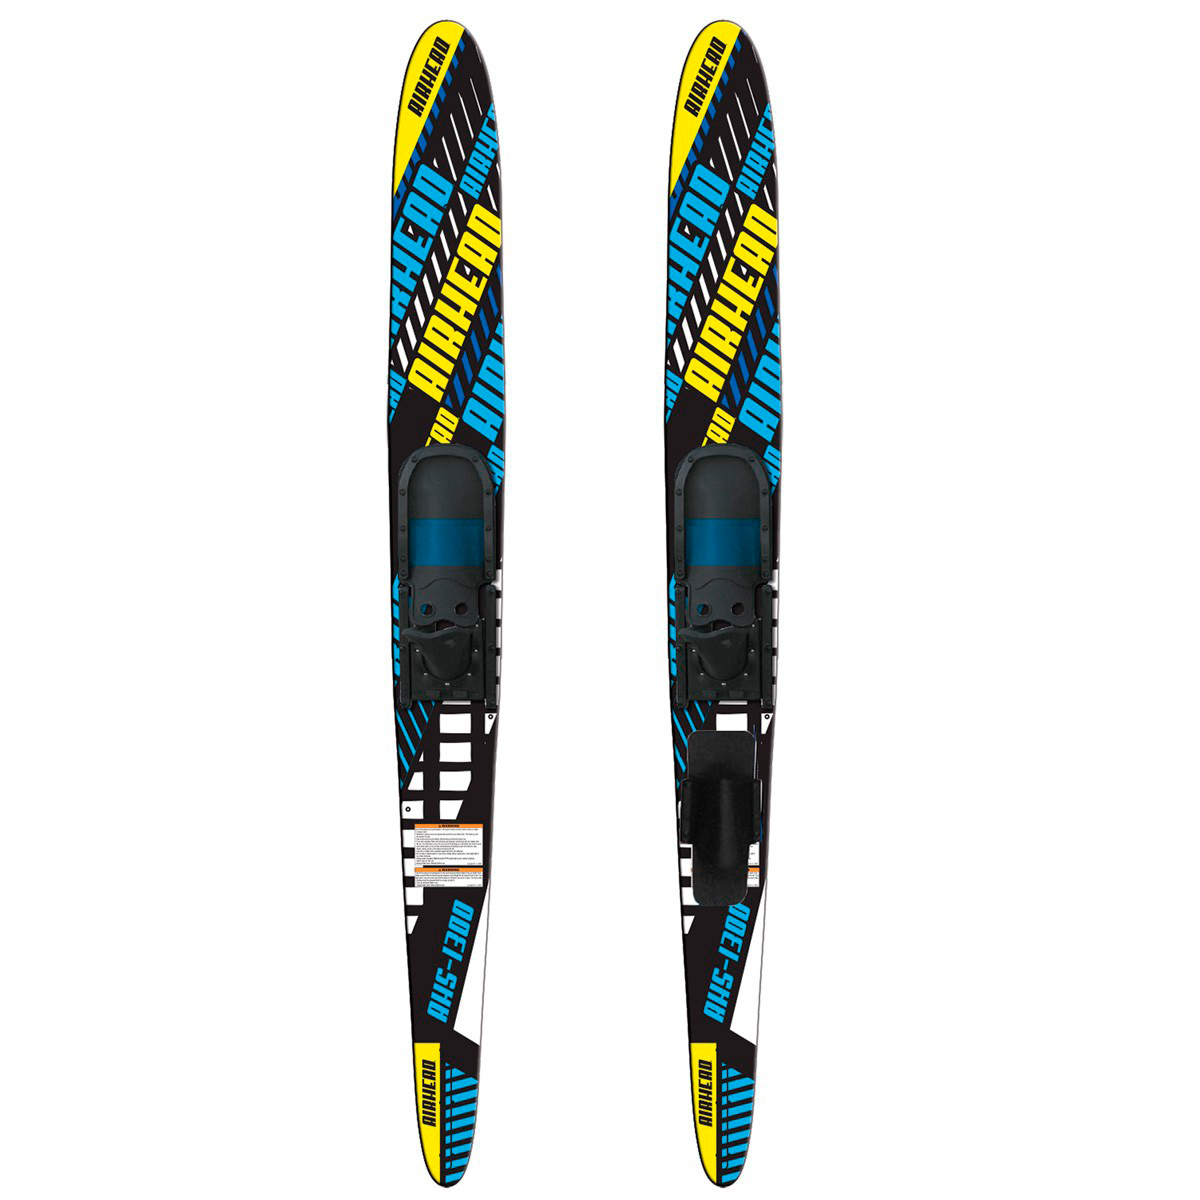 S 1300 Skis Airhead Tow Harness